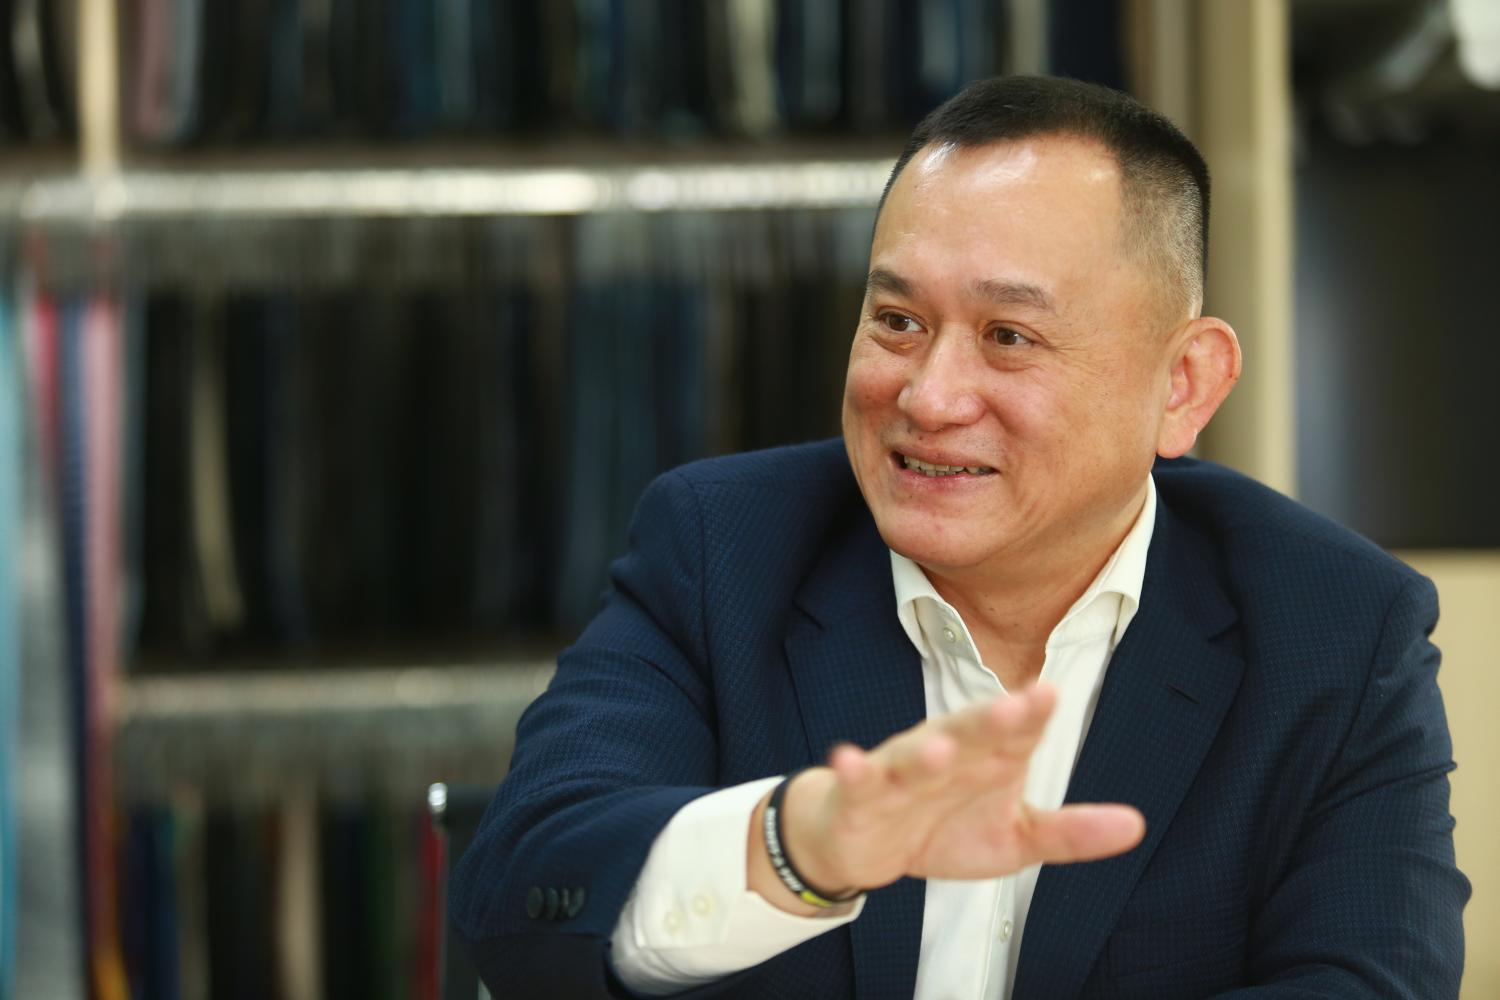 Stanley Kang, chairman of the Joint Foreign Chambers of Commerce in Thailand, talks about the downsides of the draconian TM30 immigration regulation. (Photo by Somchai Poomlard)